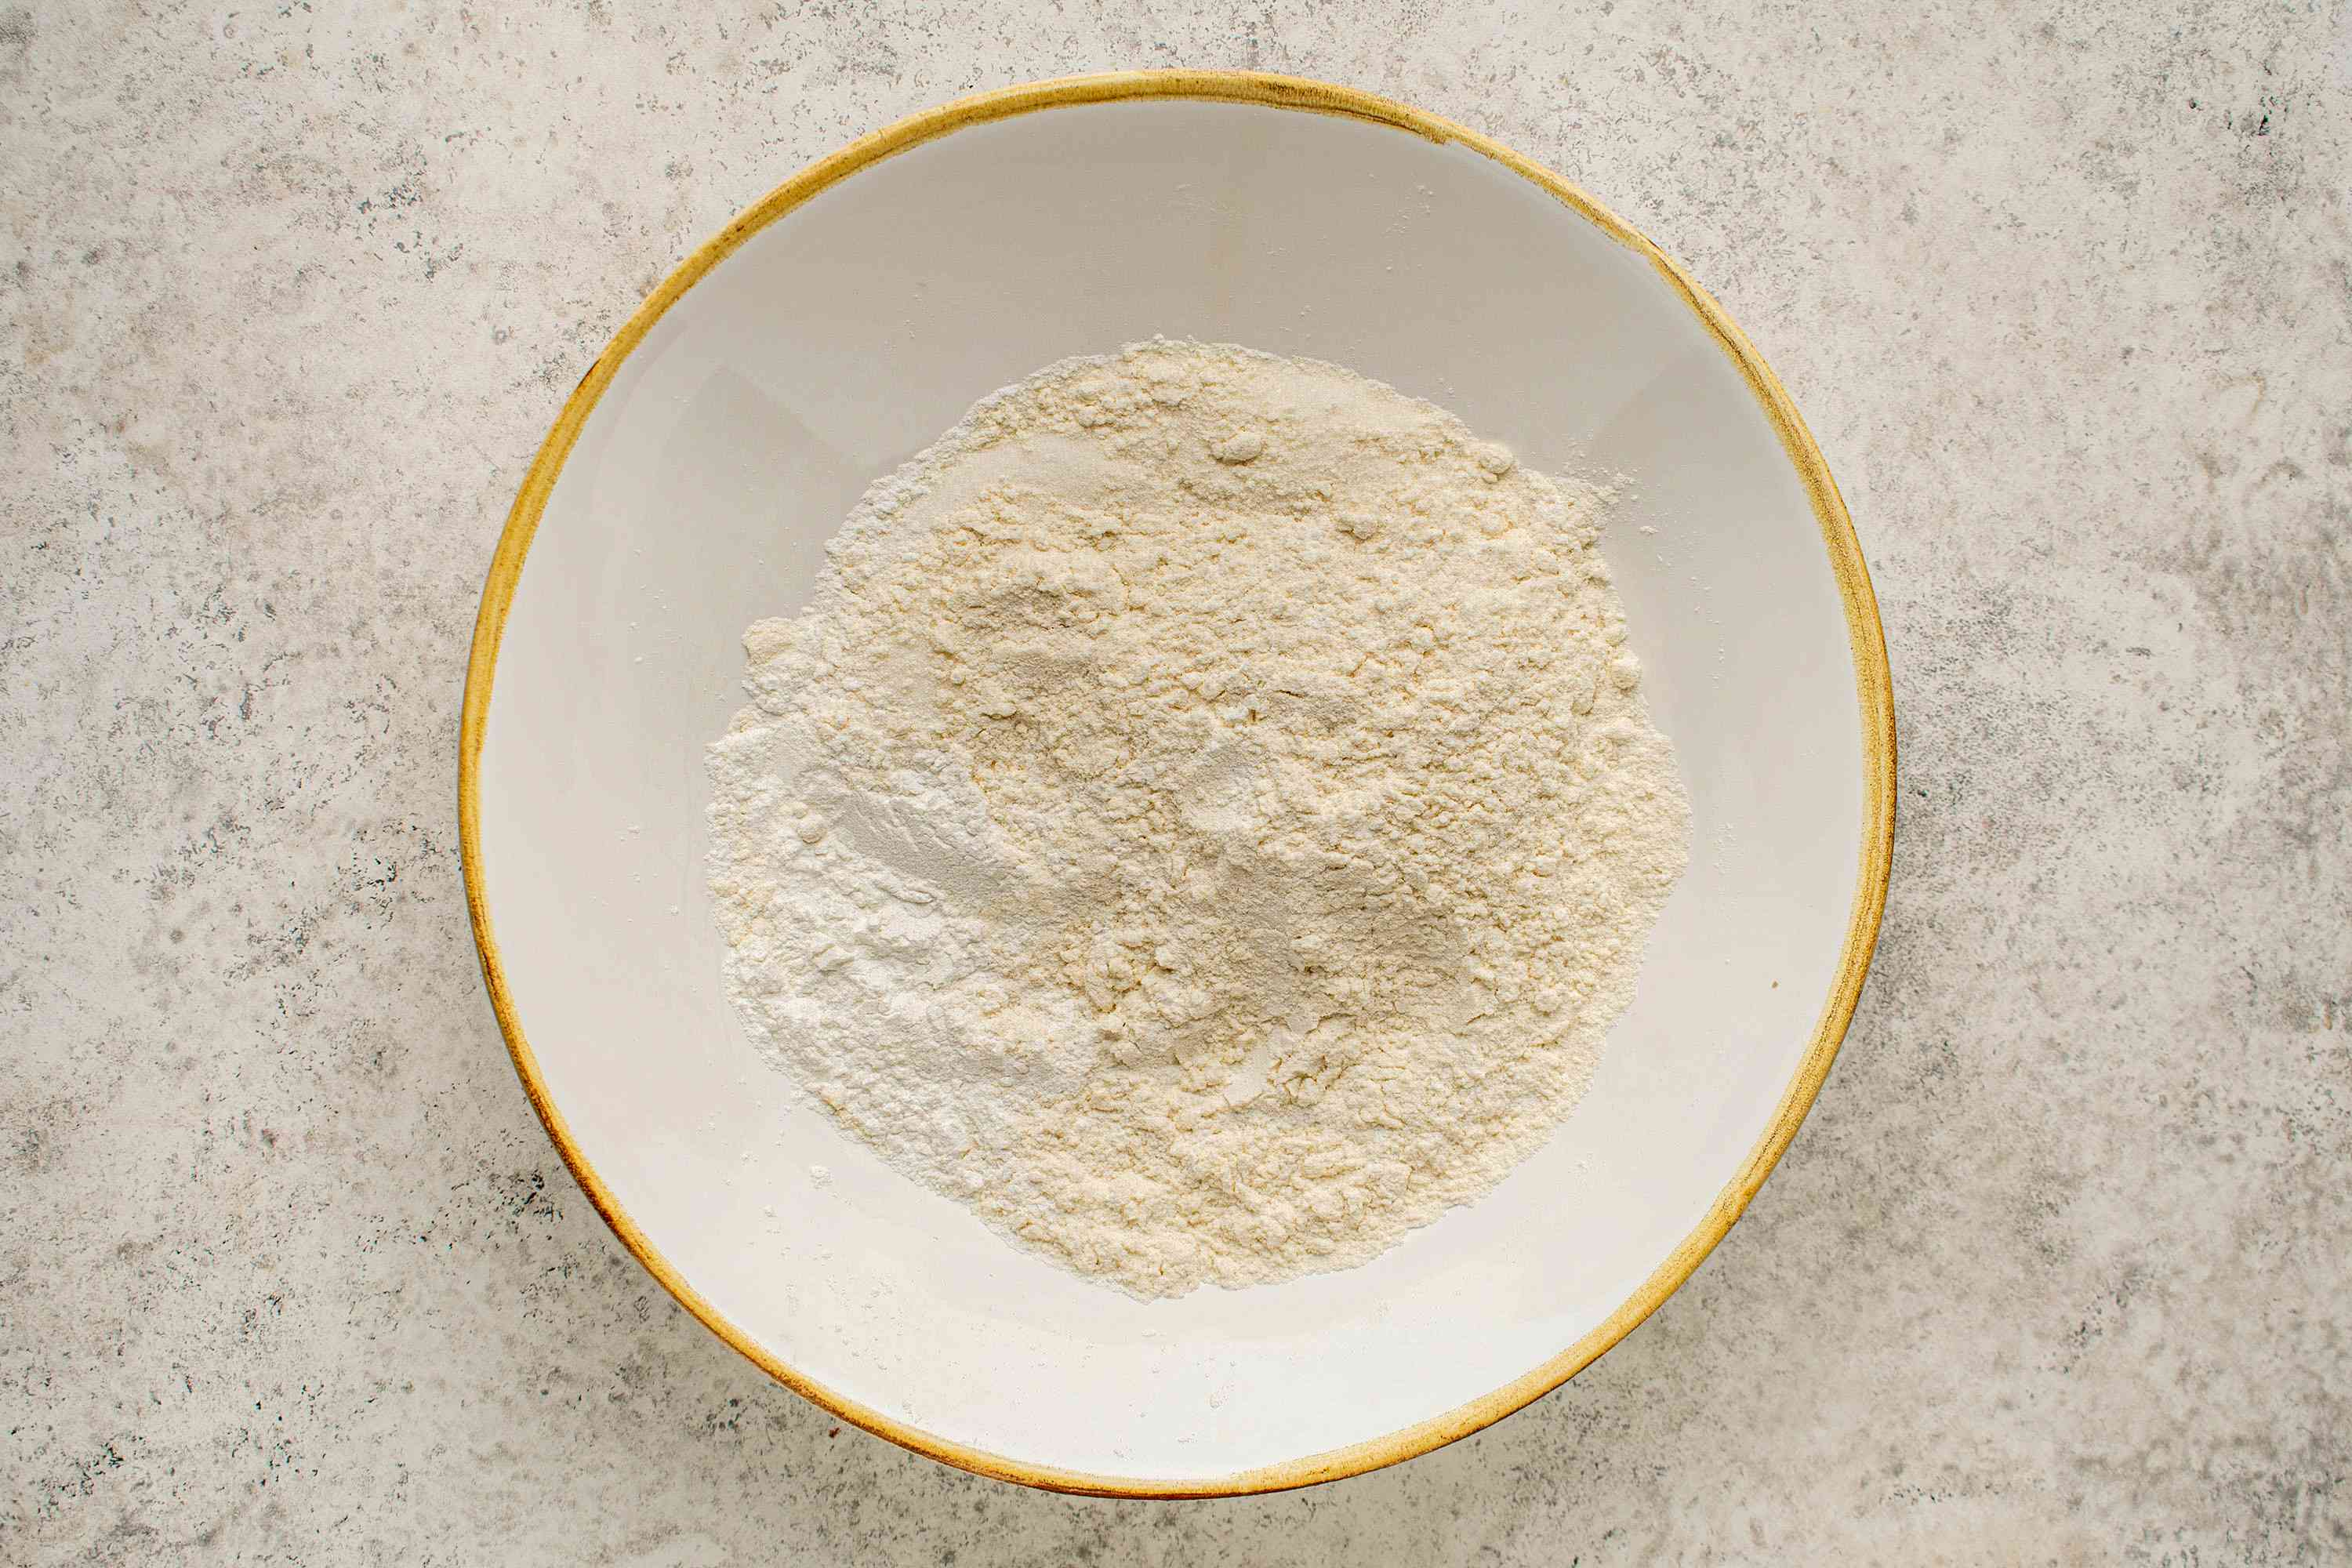 mix together the flour, baking powder, sugar, and salt in a bowl